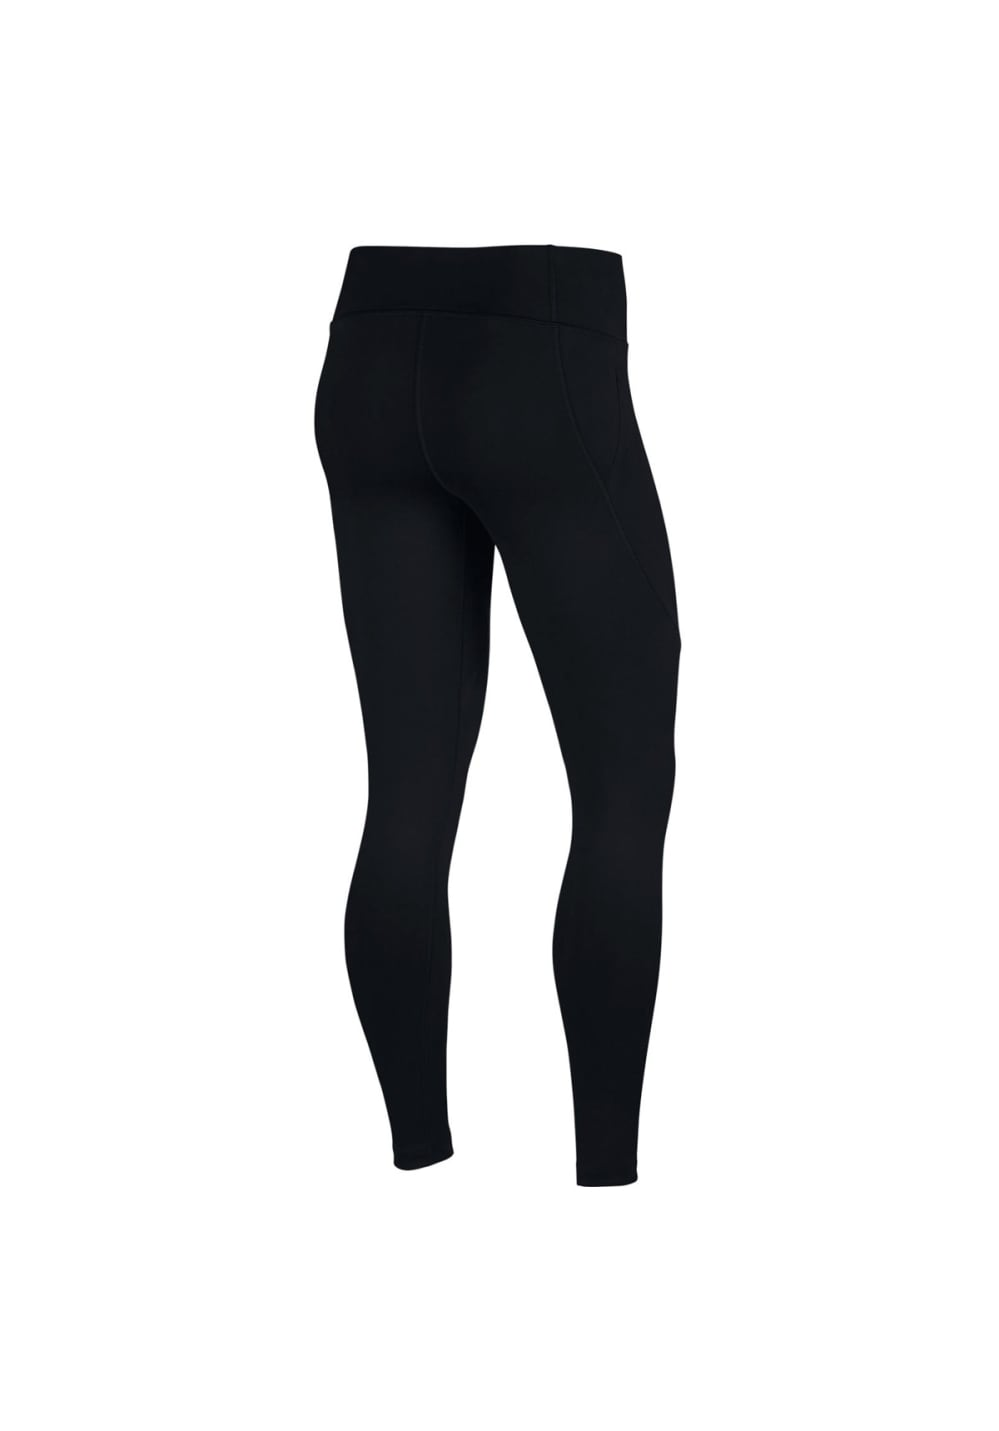 29d7aa9f5f264 Nike Power Pocket Lux Tights - Fitness trousers for Women - Black ...